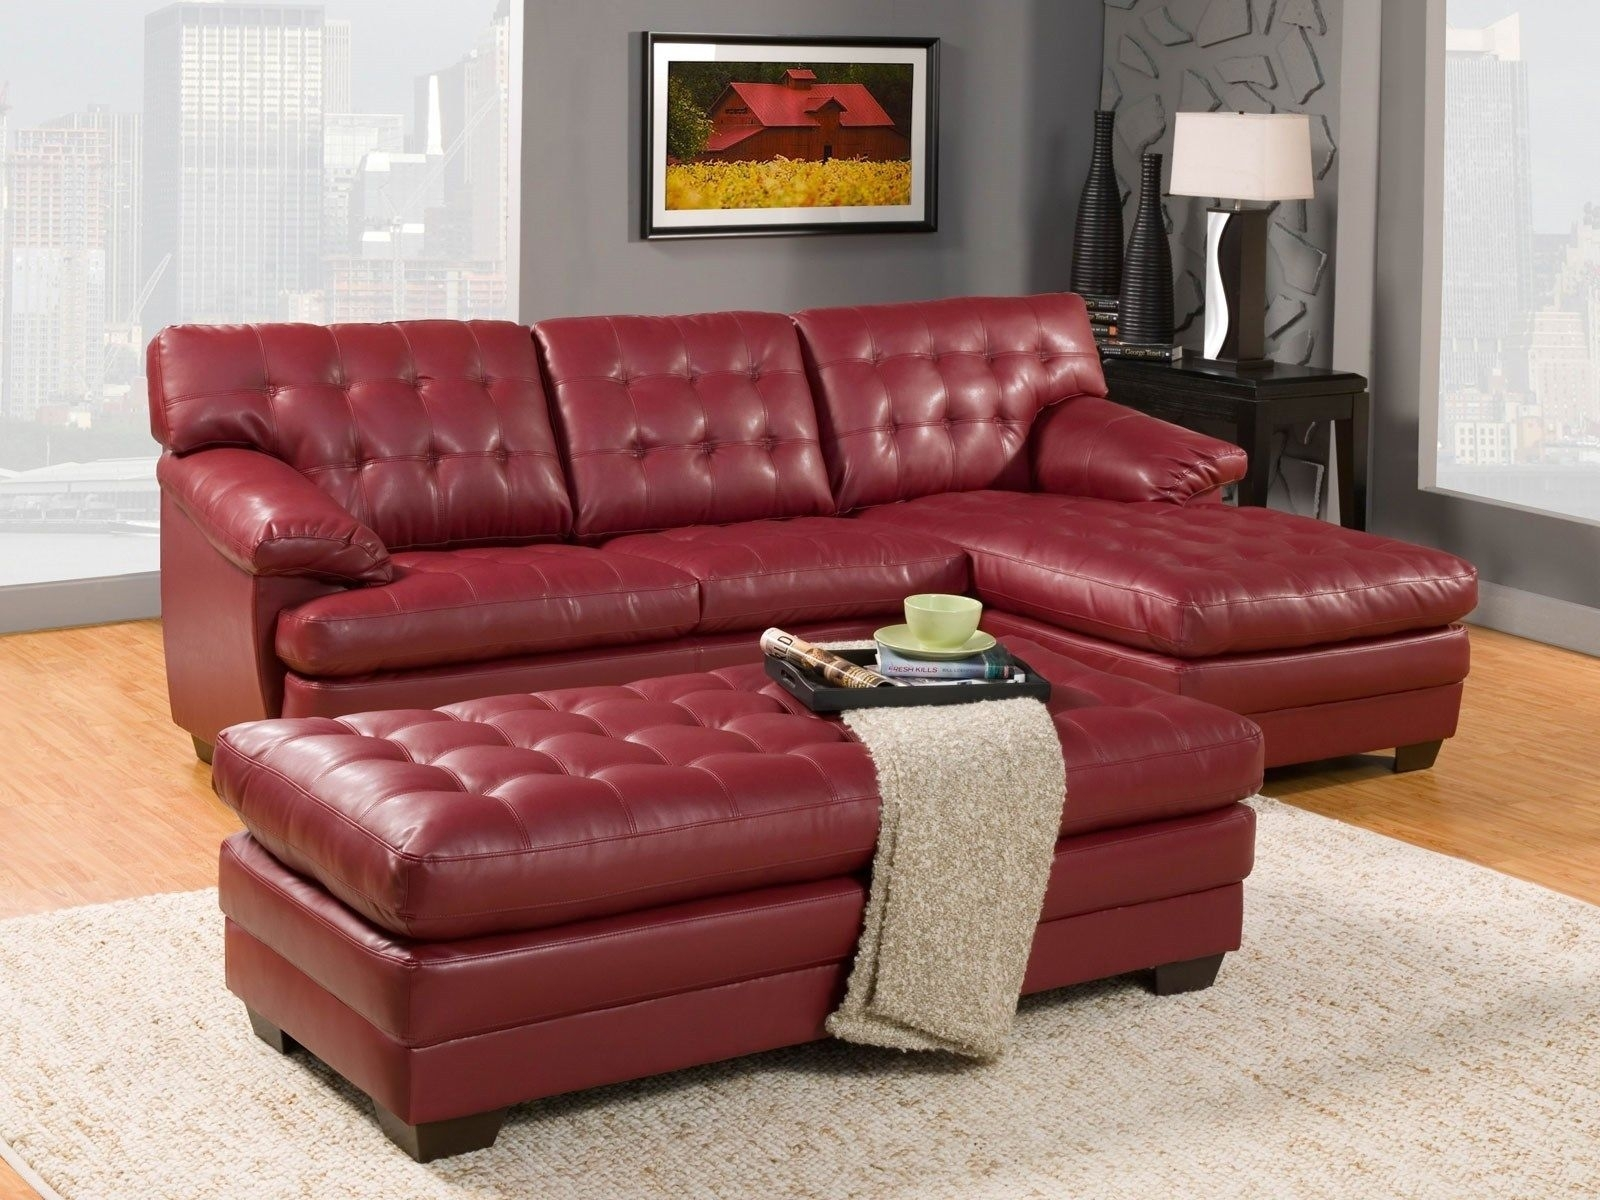 Chaisson Contemporary Bonded Leather Sectional Sofa With Inside Halifax Sectional Sofas (Image 1 of 10)